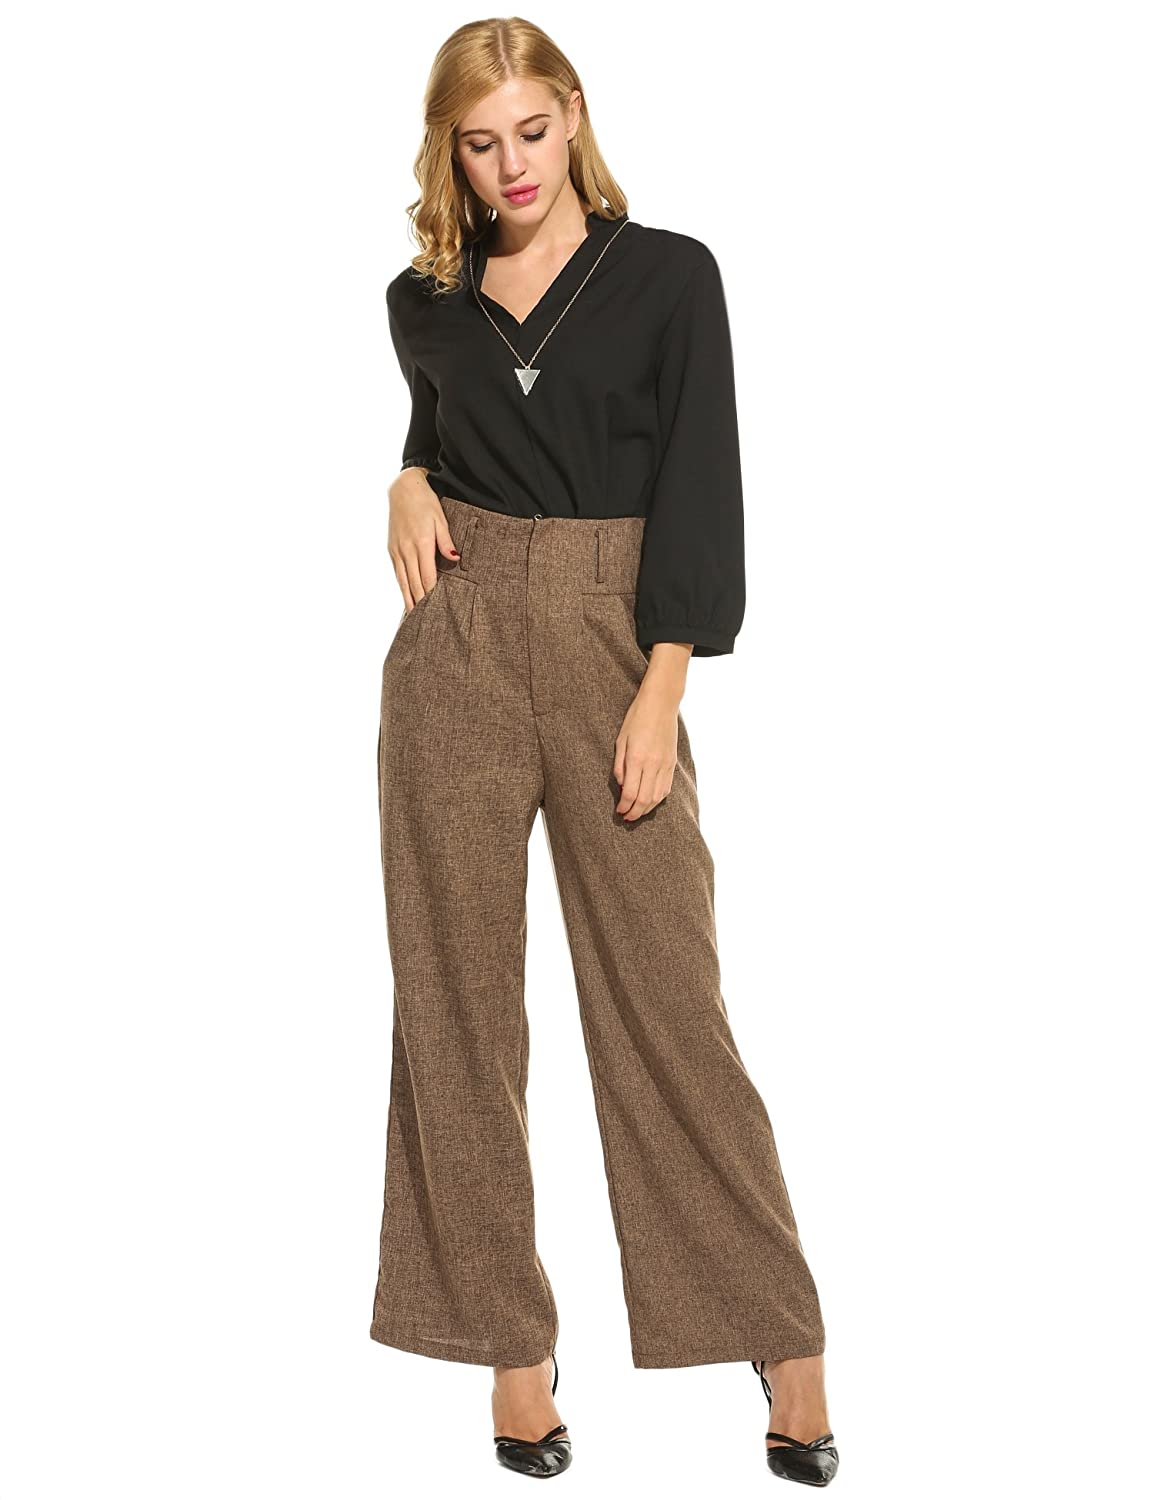 Vintage Wide Leg Pants 1920s to 1950s History Zeagoo Women Casual Superline Wide Flare Leg High Waist Zipper Solid Long Pants $25.99 AT vintagedancer.com